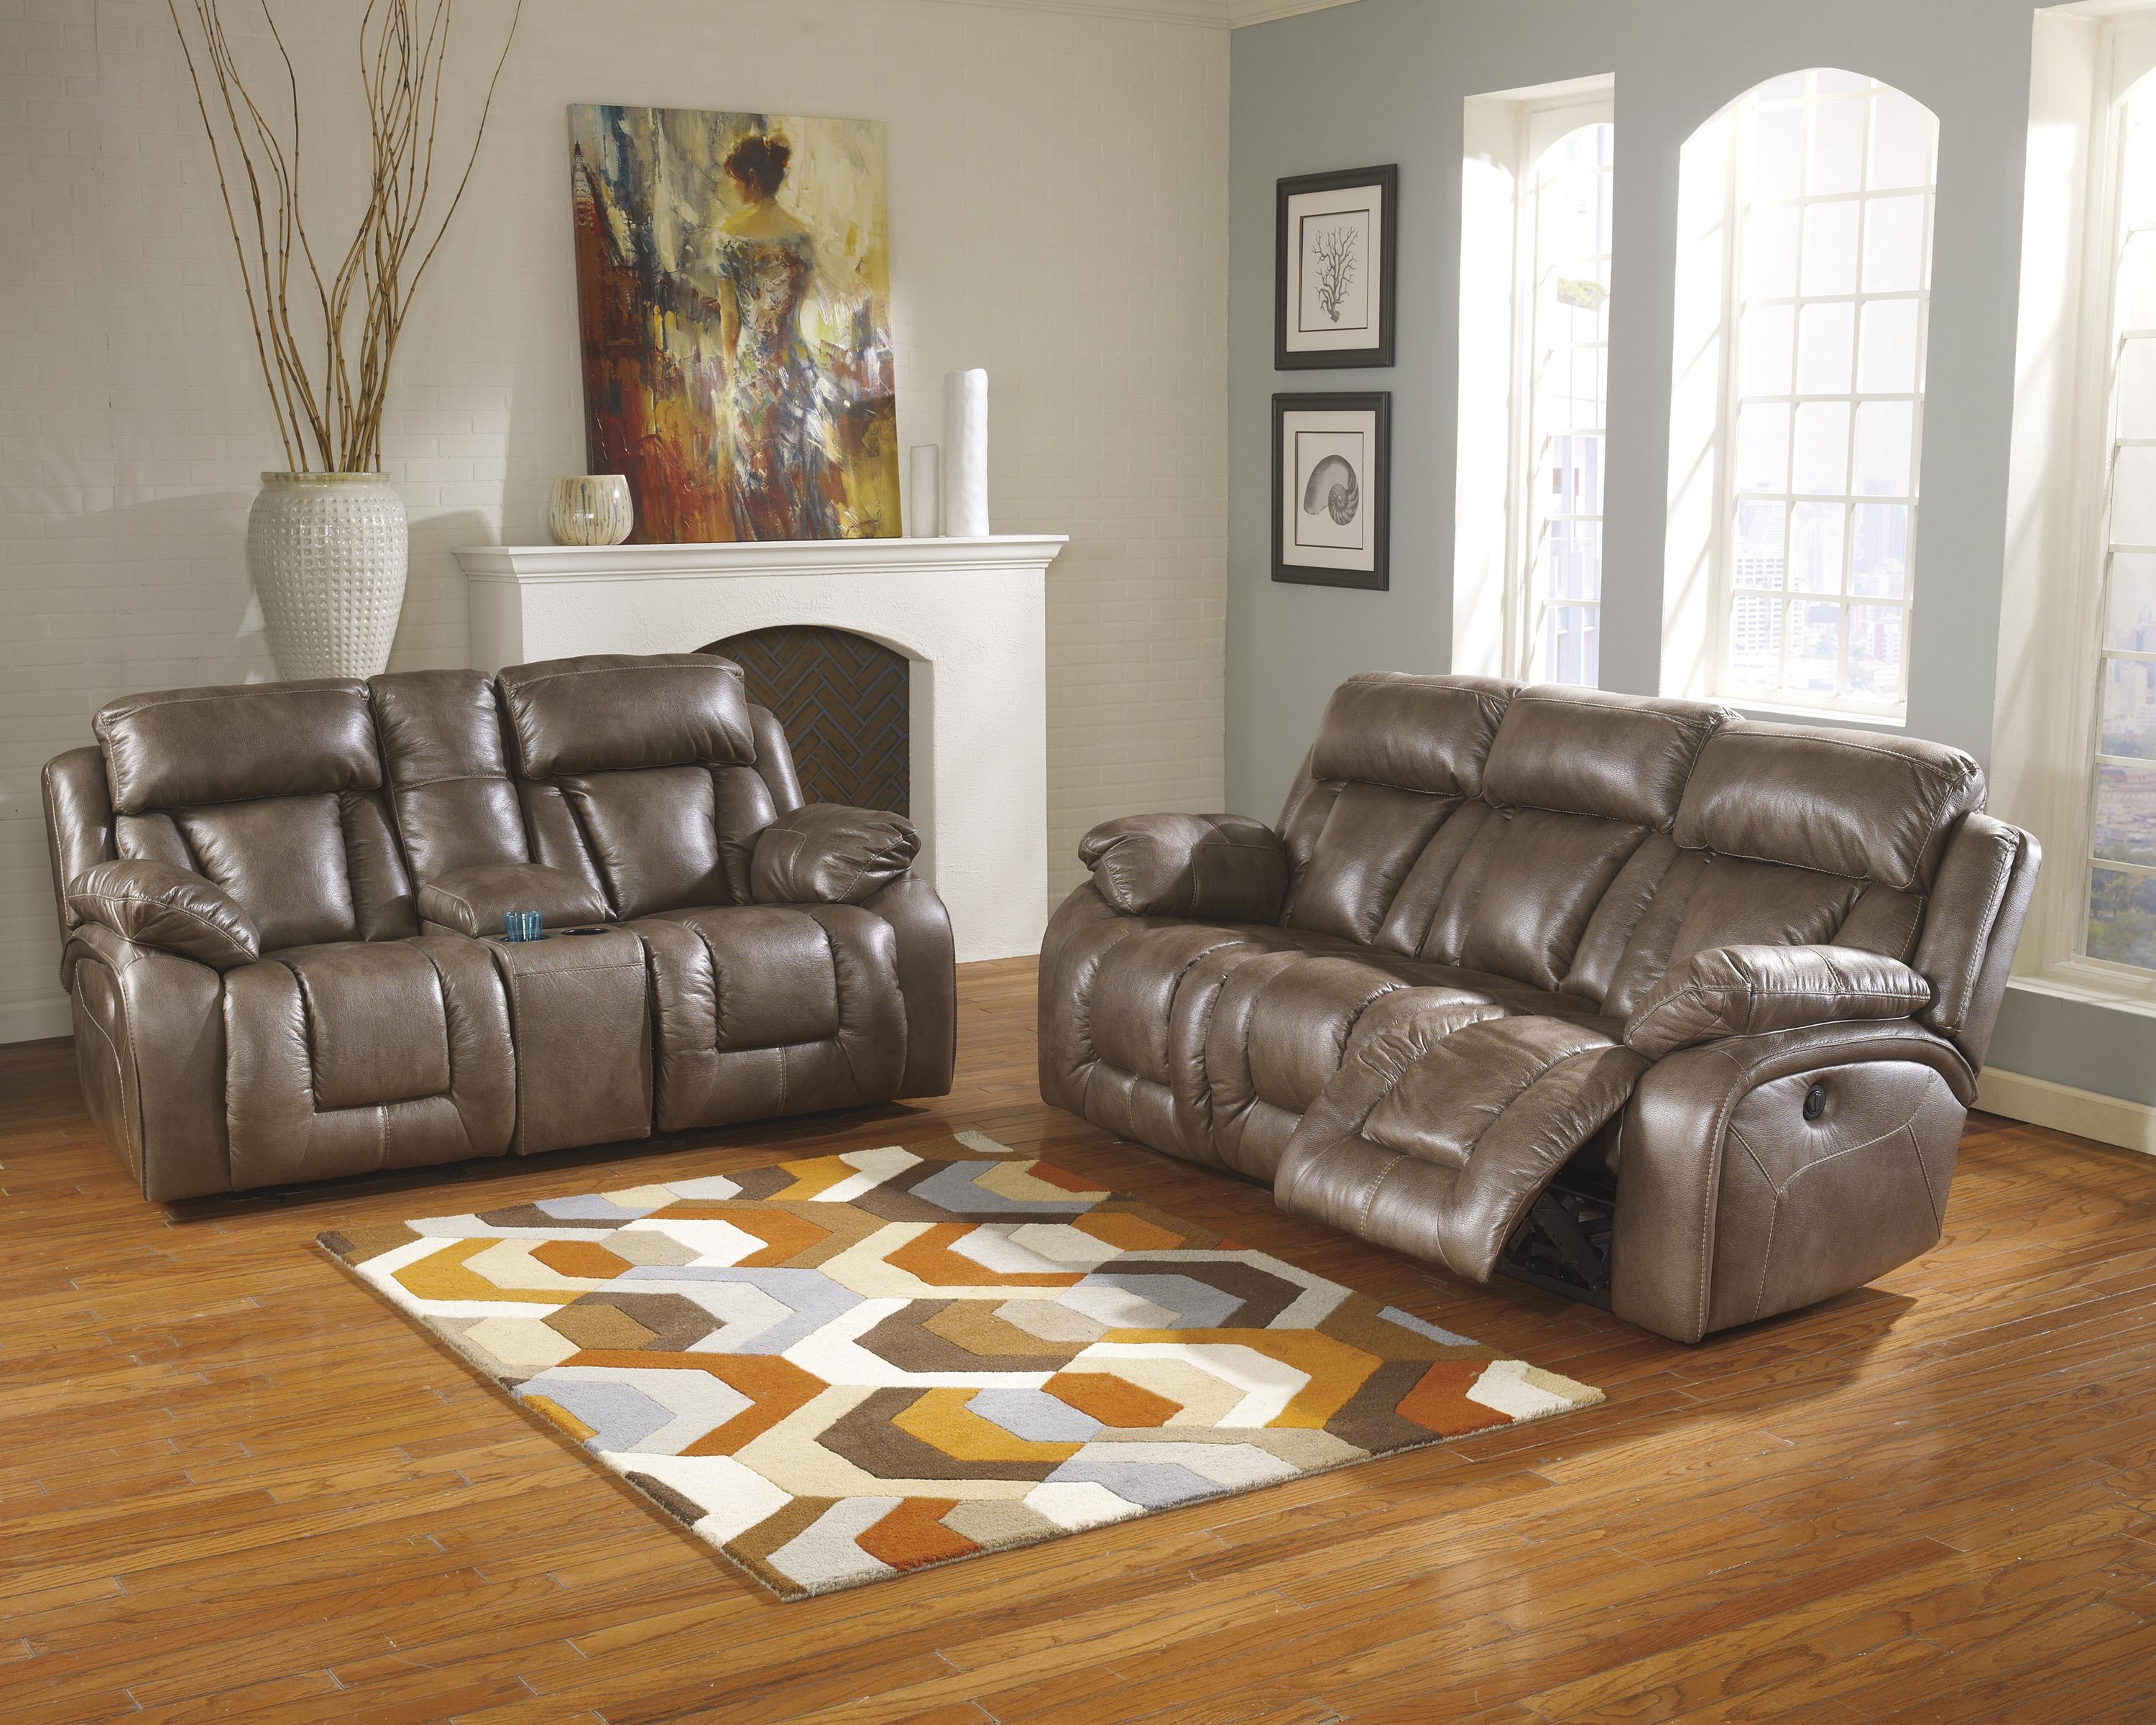 Muebles In Bowling Green Ky - Ashley Furniture Loral Sable Reclining Living Room Group Ahfa [mjhdah]https://images.furnituredealer.net/img/collections%2Fashley_furniture%2Fbradington%20-%20truffle_154-lss-b5.jpg